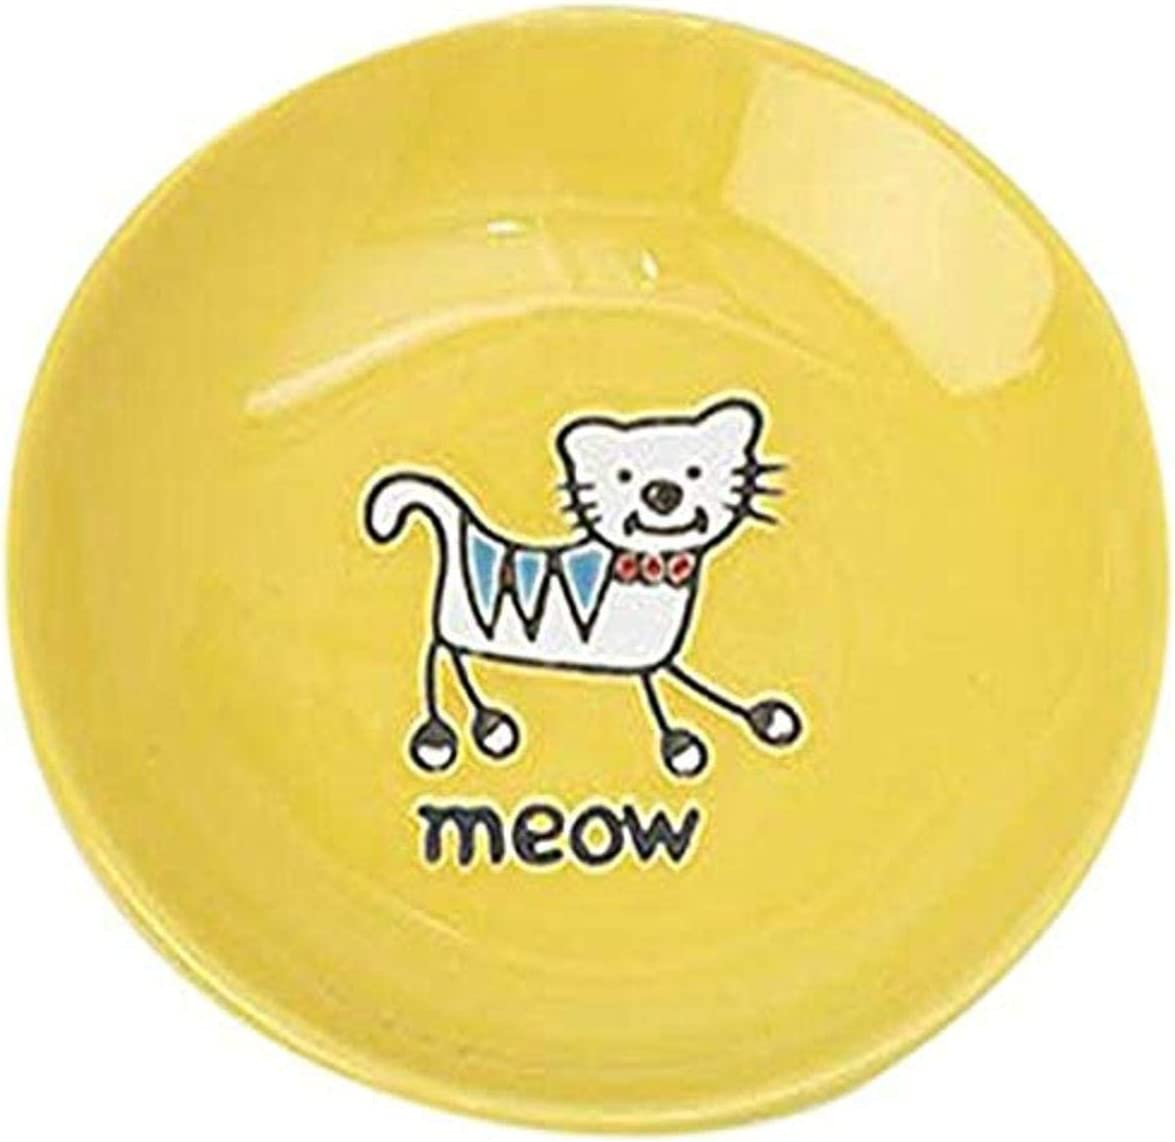 PetRageous 11019 Silly Kitty Dishwasher and Microwave Stoneware Cat Saucer 5-Inch Diameter 2.5-Ounce Capacity for Wet or Dry Cat Food Great For All Cats of All Sizes, Yellow